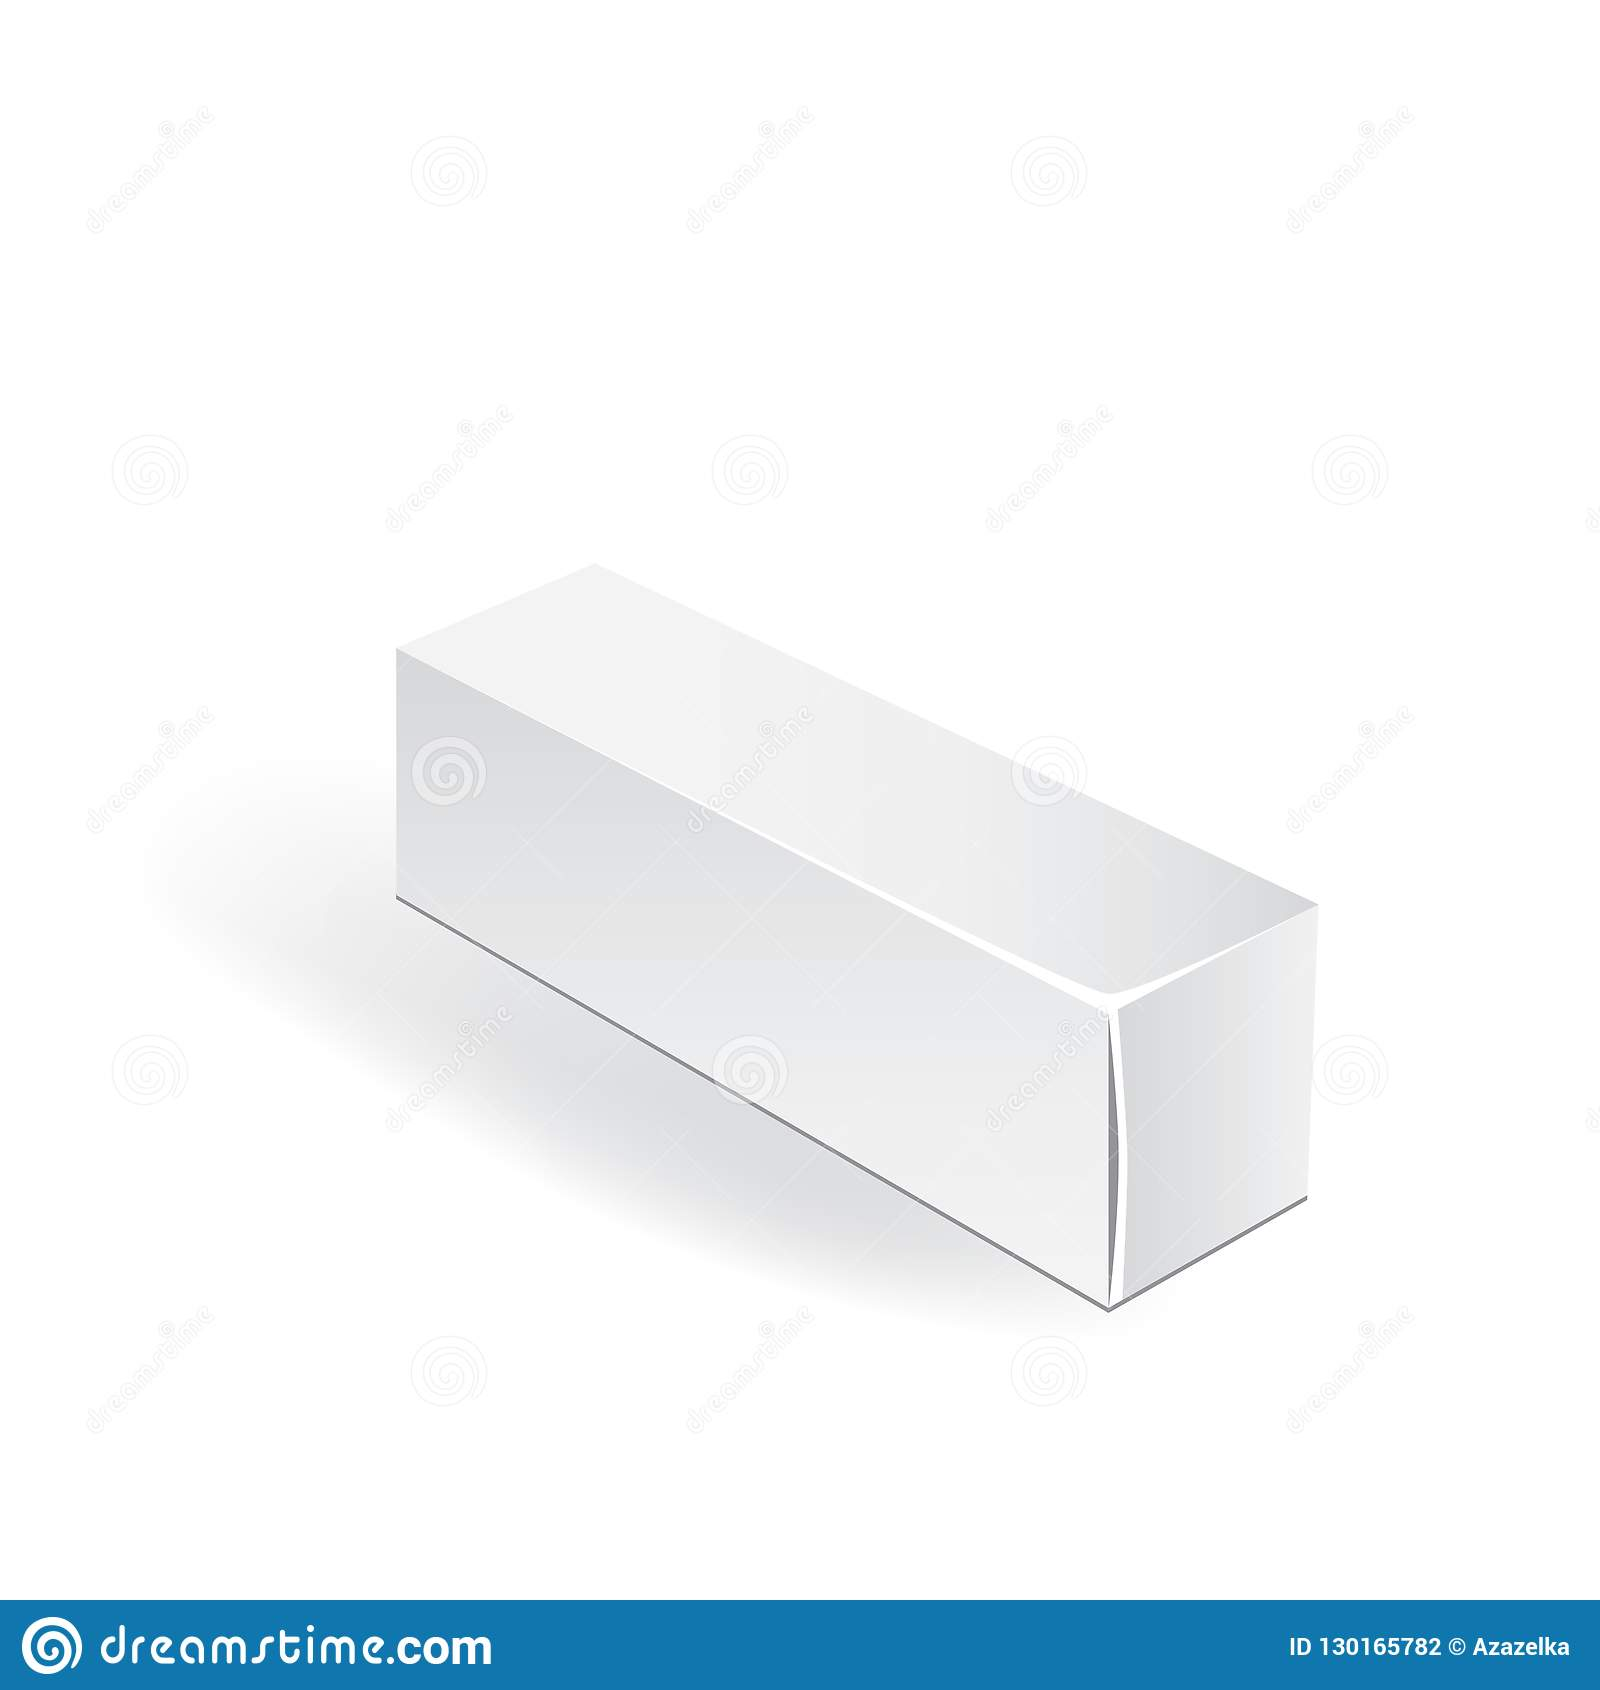 white package box packaging mock up template good for a food